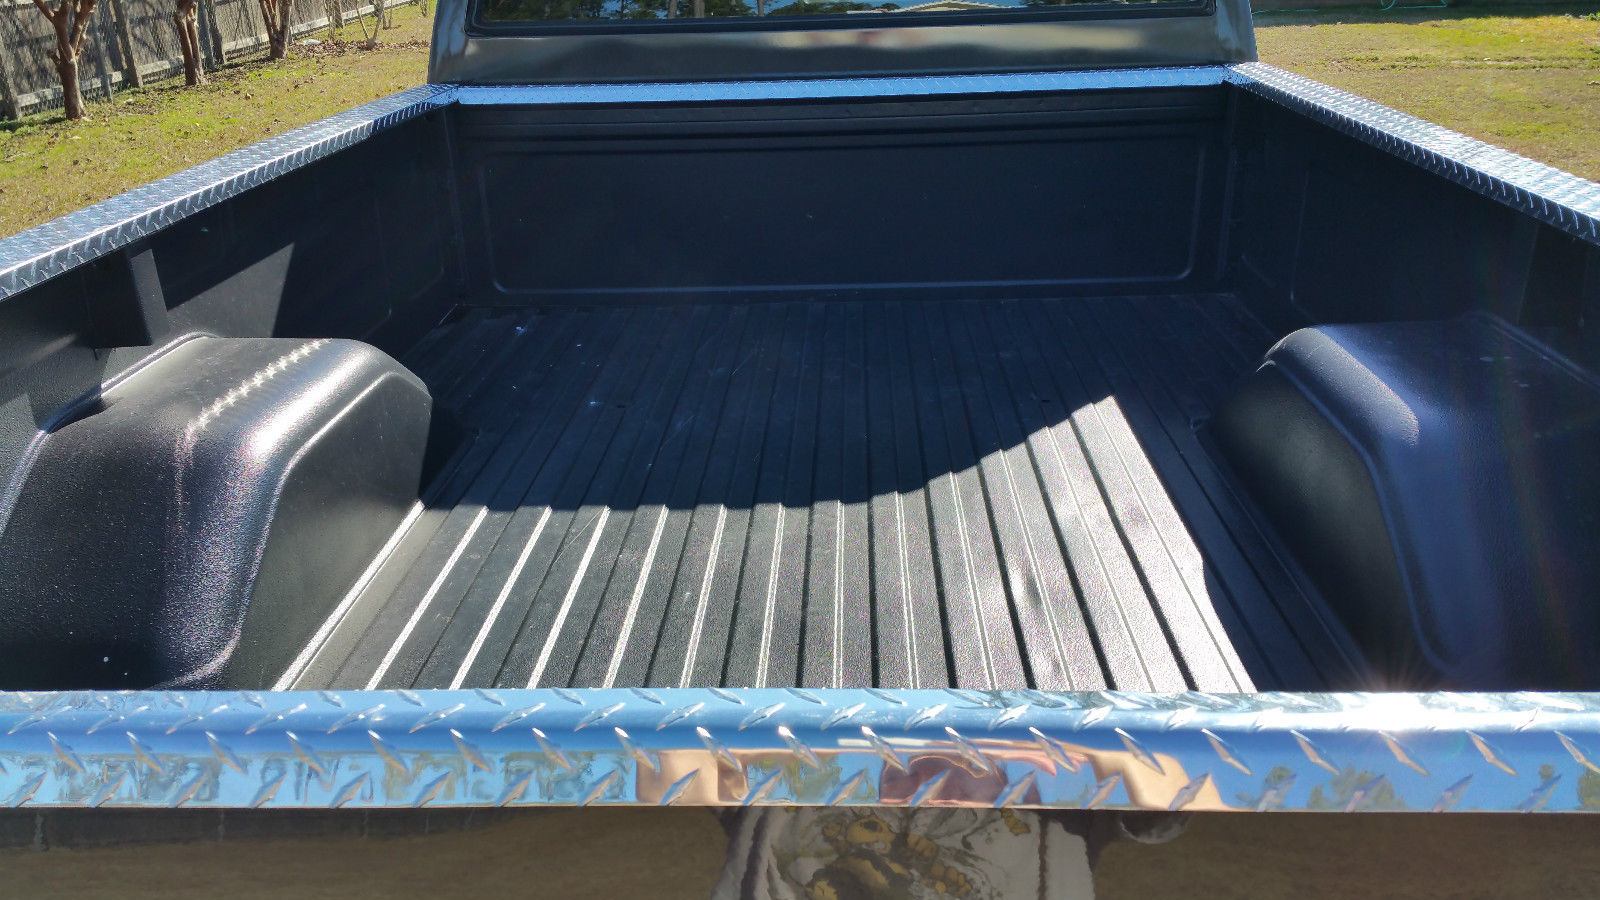 1982 Chevy Silverado 3500 crew cab long bed 4x4 truck ...